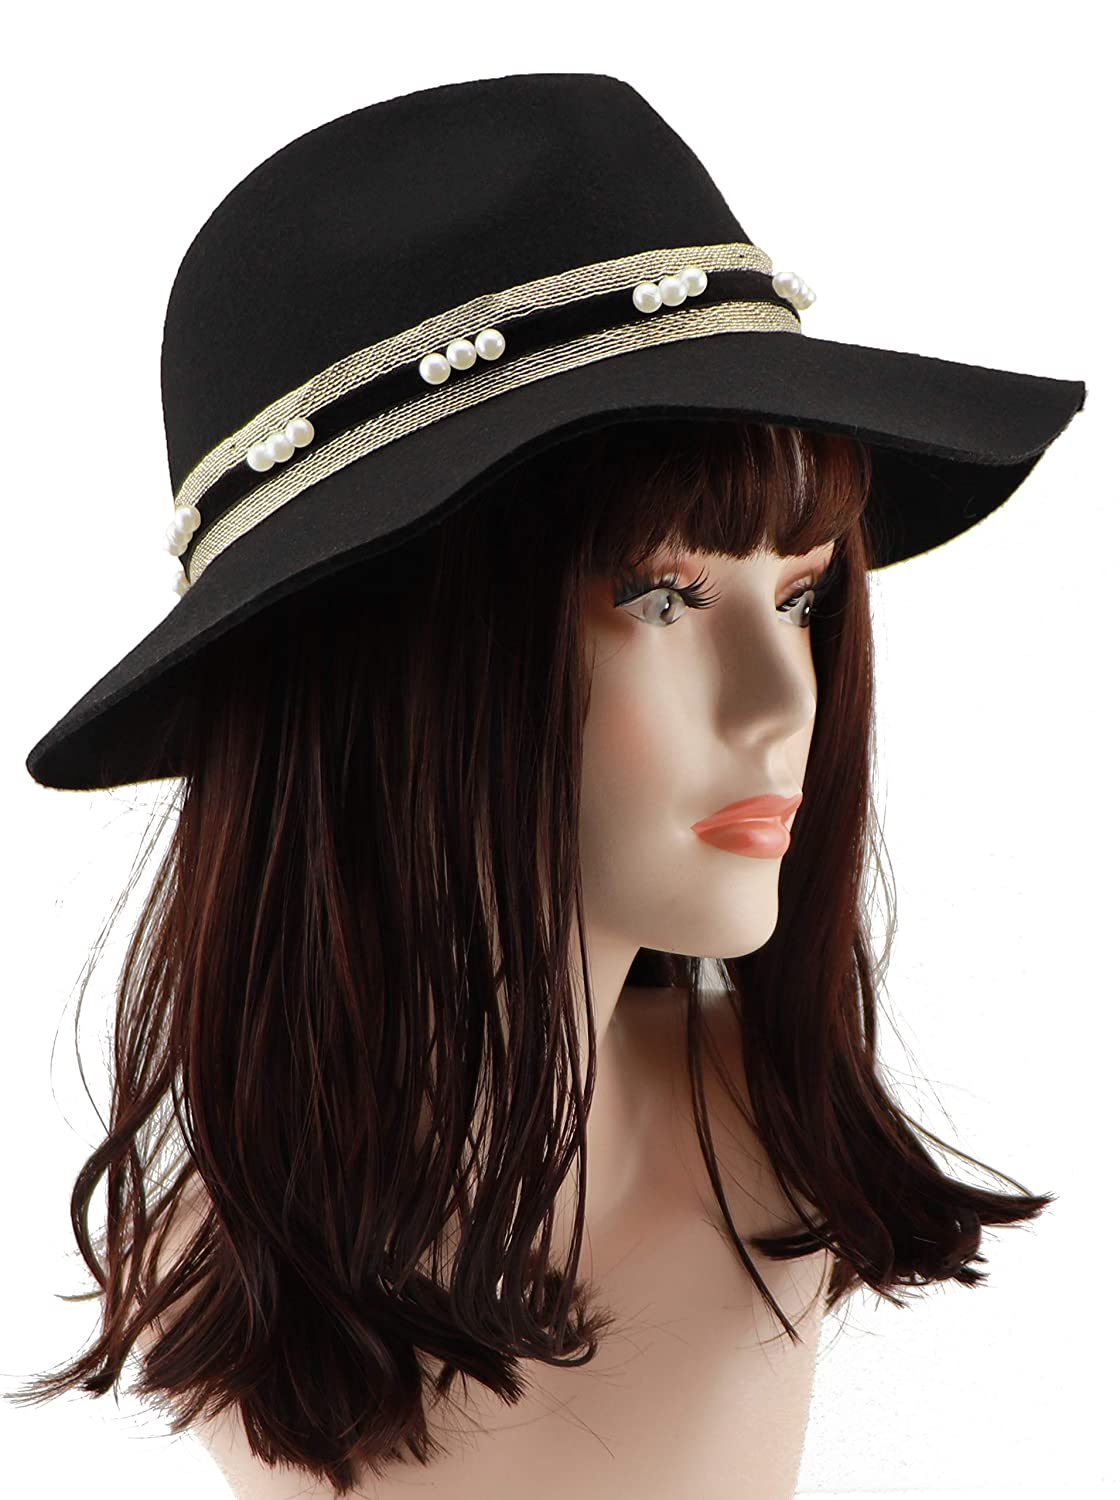 537a99e3e56 Amazon.com  Loufmive Women s Wide Brim Wool Fedora Hat Vintage Felt Bowler Cap  Panama Hat for Winter Fall Spring(Black)  Clothing